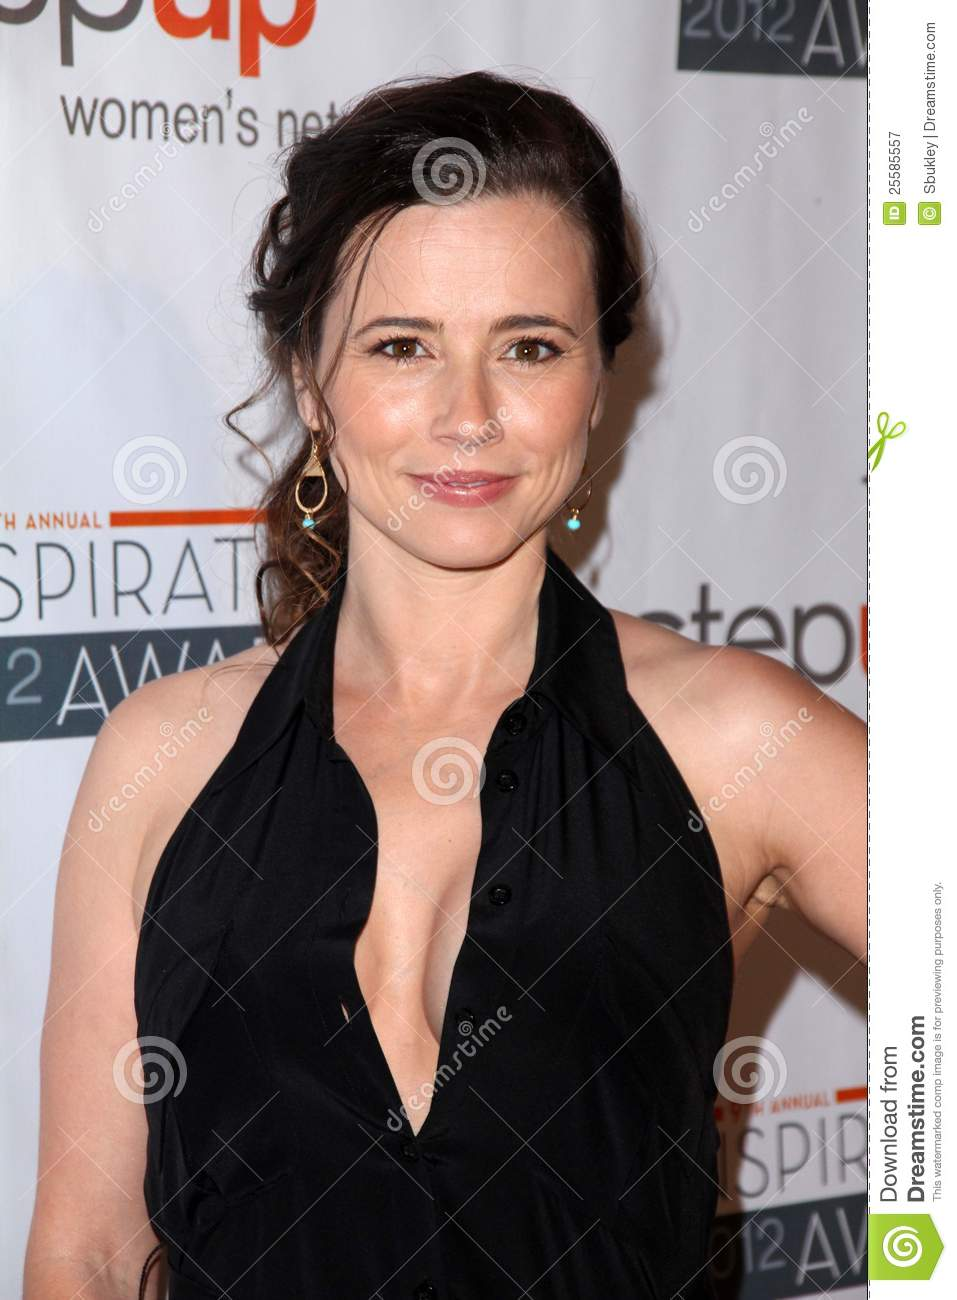 Linda Cardellini At The Step Up Women Network 9th Annual